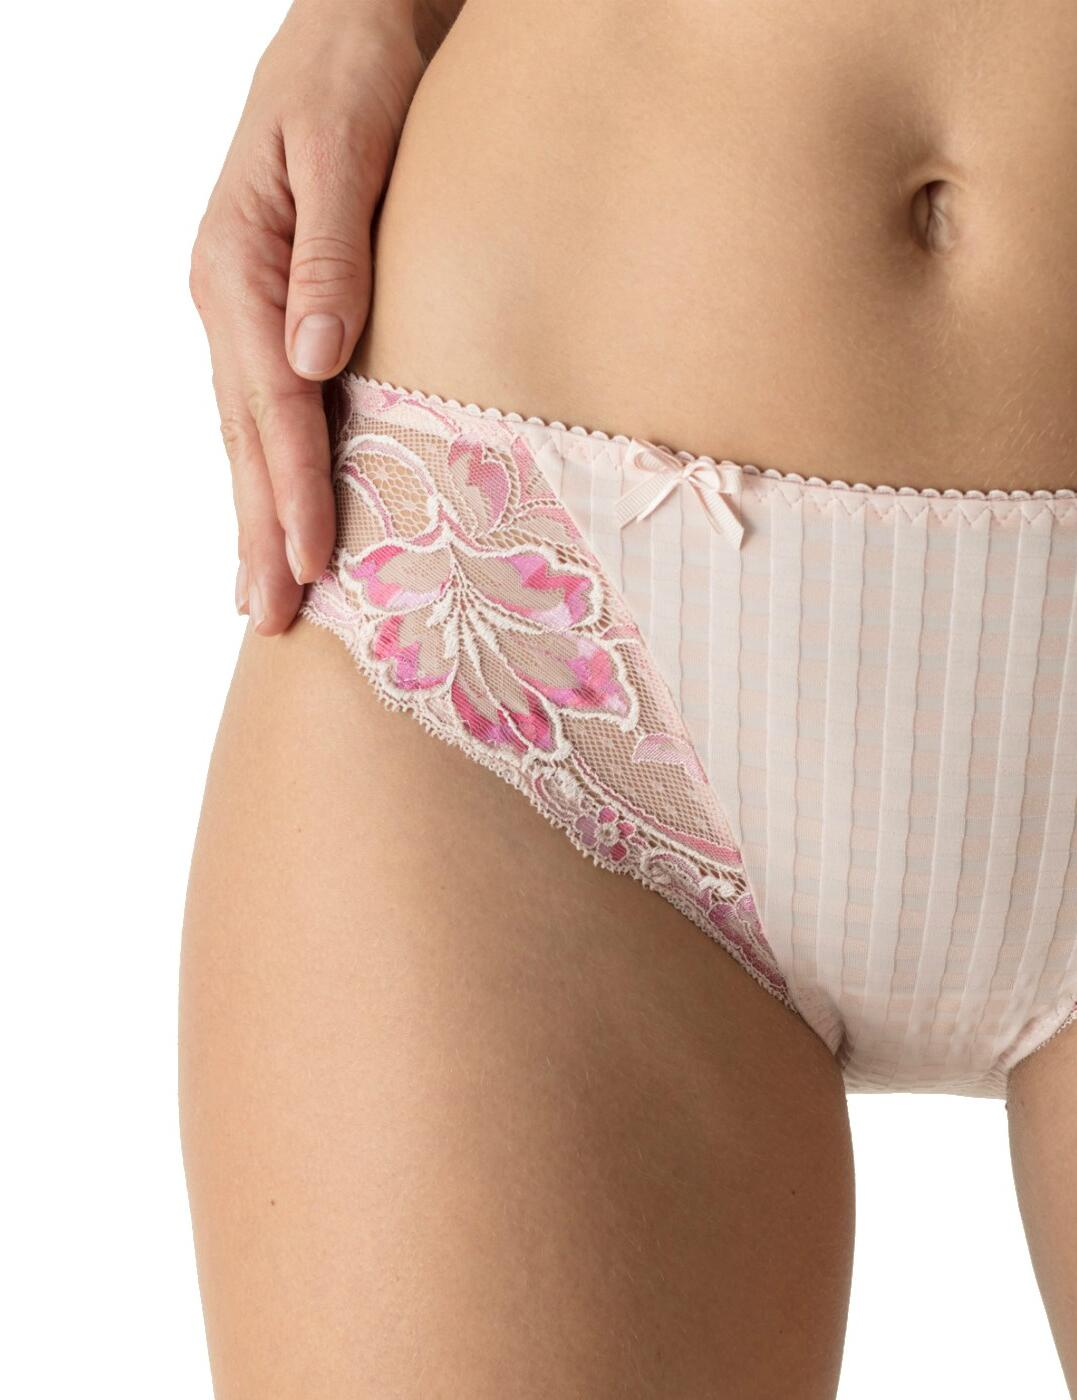 Prima-Donna-Madison-Rio-Briefs-Knickers-0562120-Womens-Luxury-Lingerie thumbnail 14